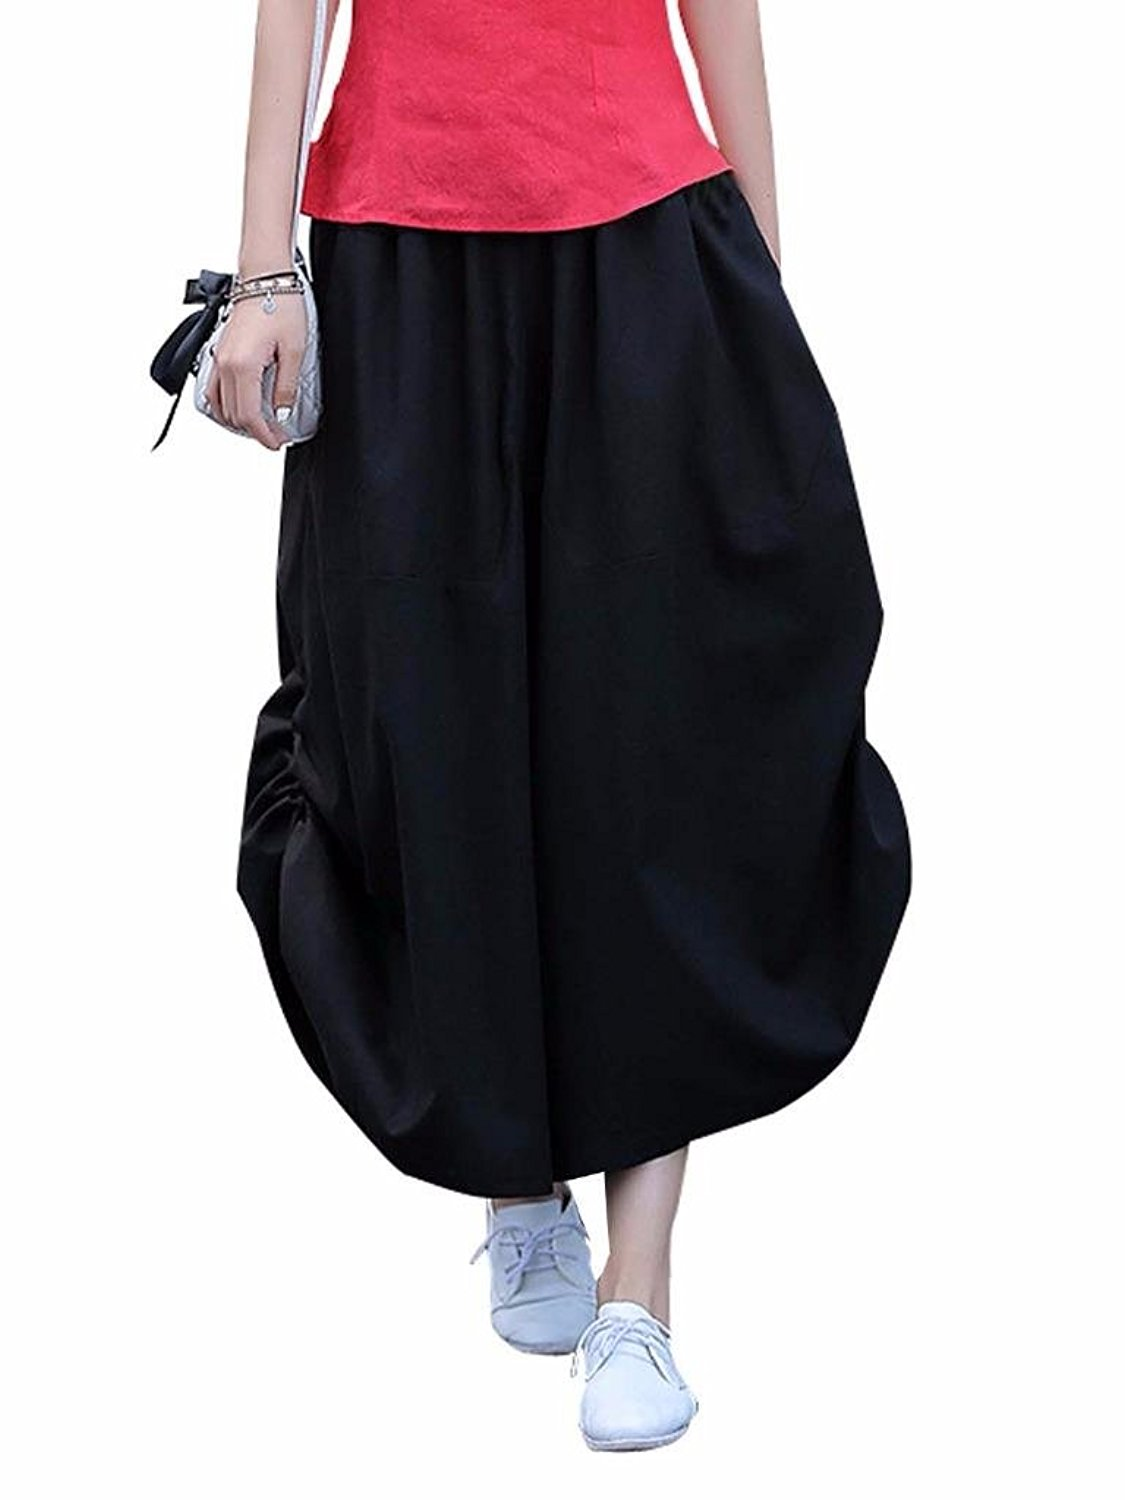 851eea02486 Get Quotations · MUST WAY Women s Solid Linen Dressy Pants Wide Leg Stretch  Leggings Lantern Skirt Trousers